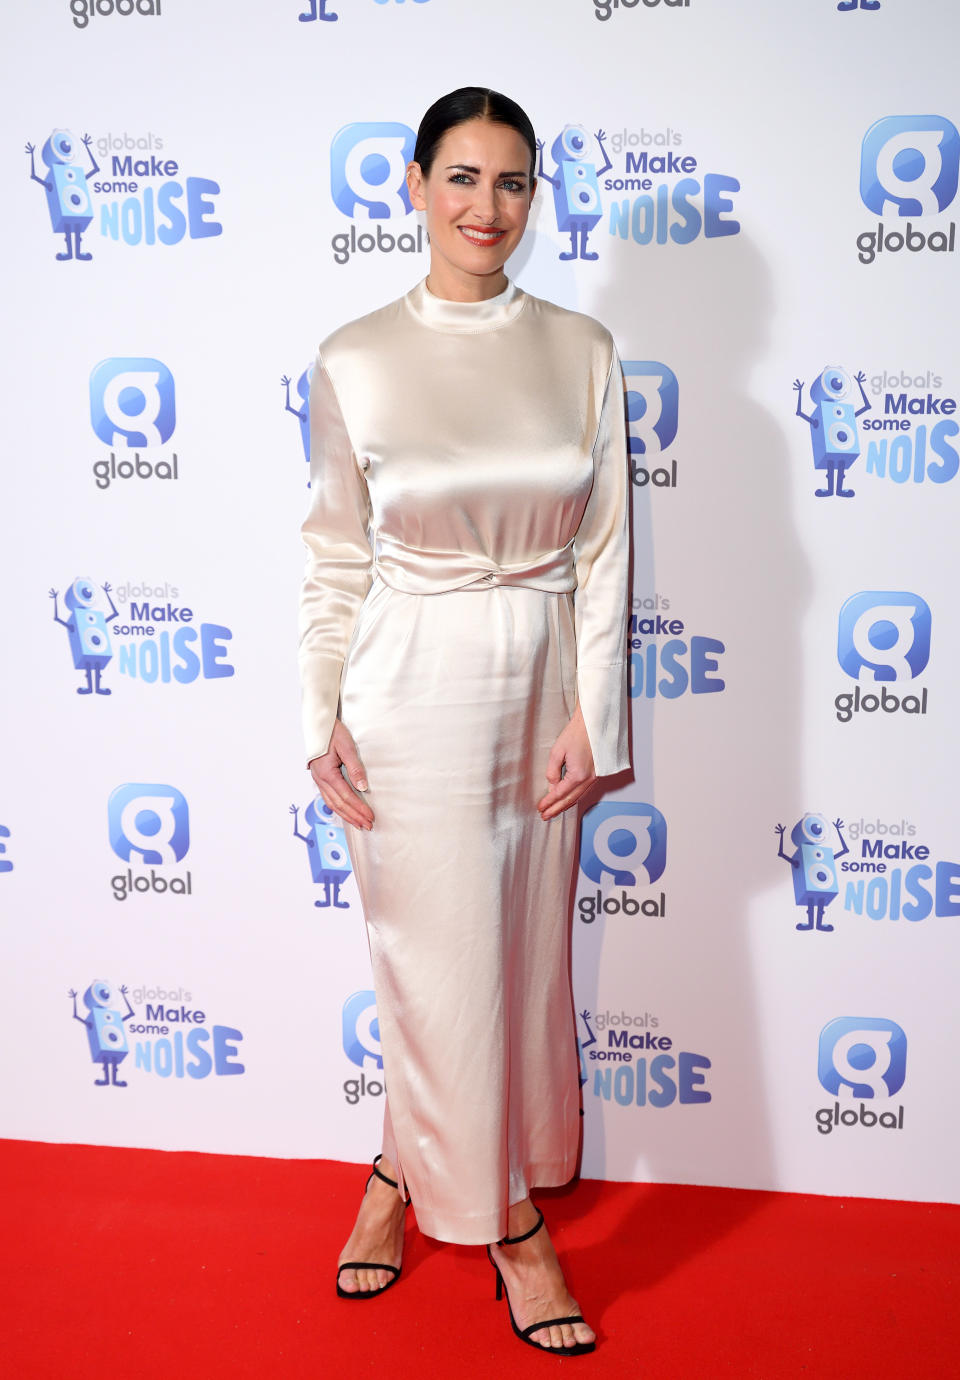 LONDON, ENGLAND - NOVEMBER 25: Kirsty Gallacher attends Global's Make Some Noise Night 2019 at Finsbury Square Marquee on November 25, 2019 in London, England. (Photo by Karwai Tang/WireImage)